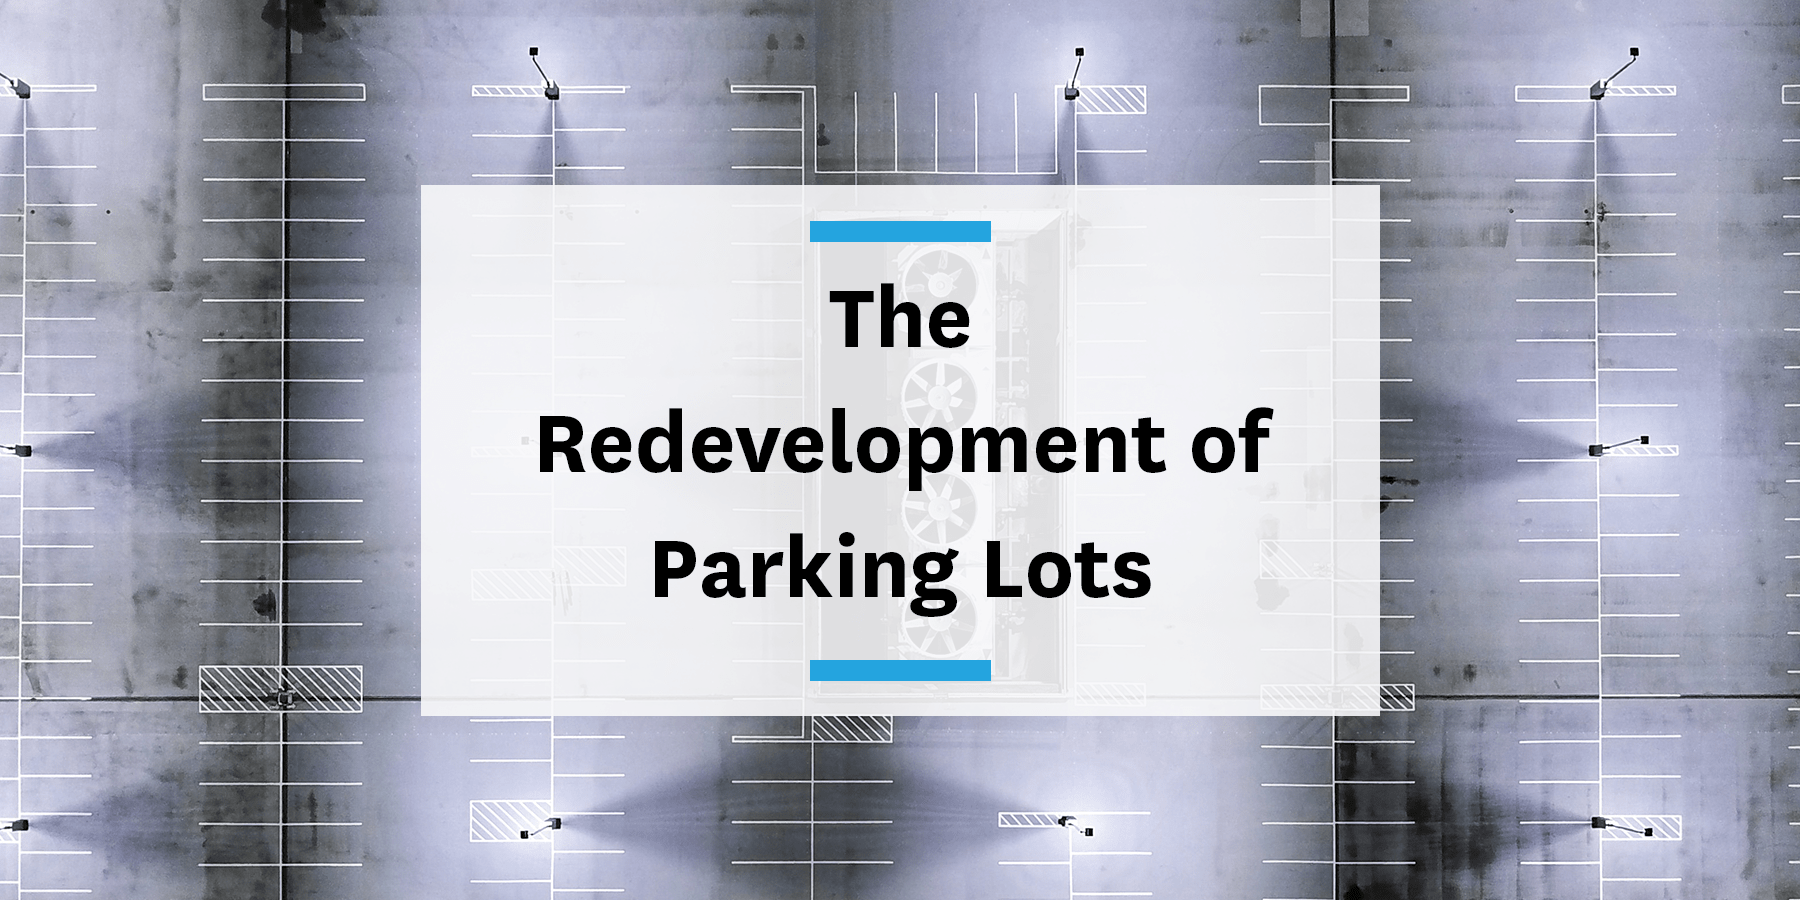 Feature image micromobility and the redevelopment of parking lots